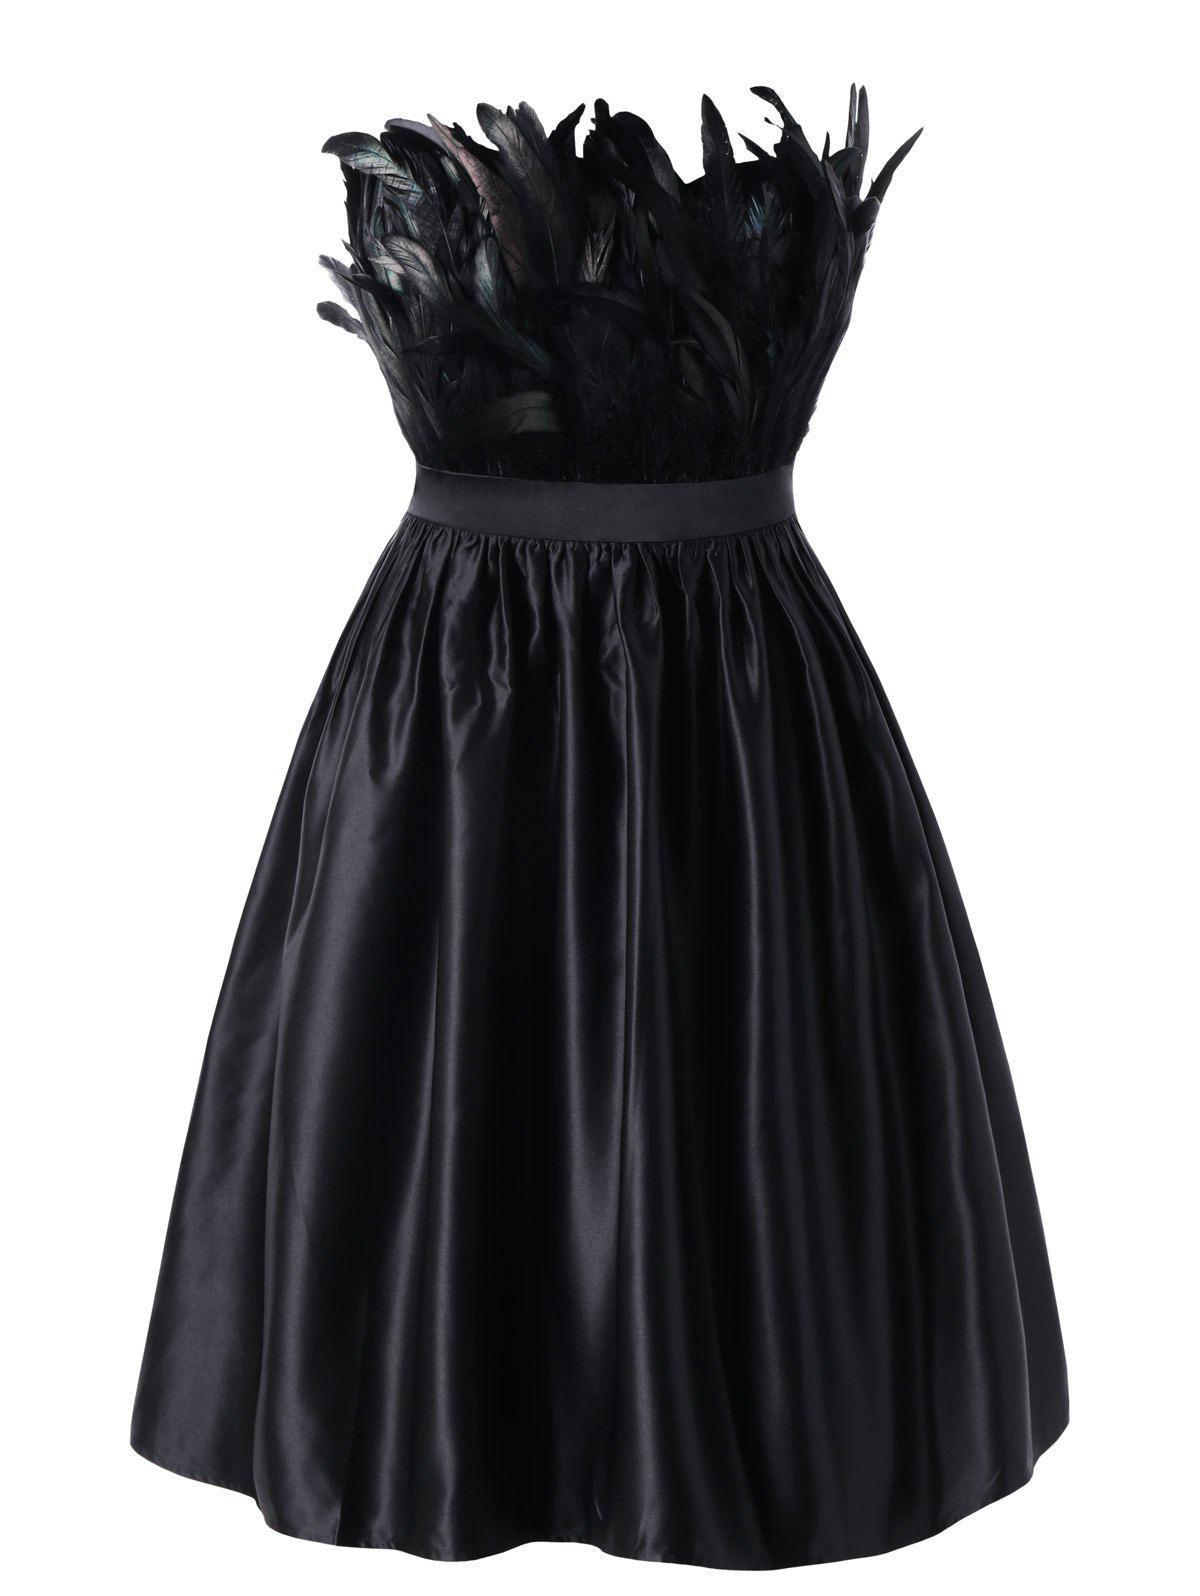 Trendy Plus Size Feather Embellished Vintage Swing Dress